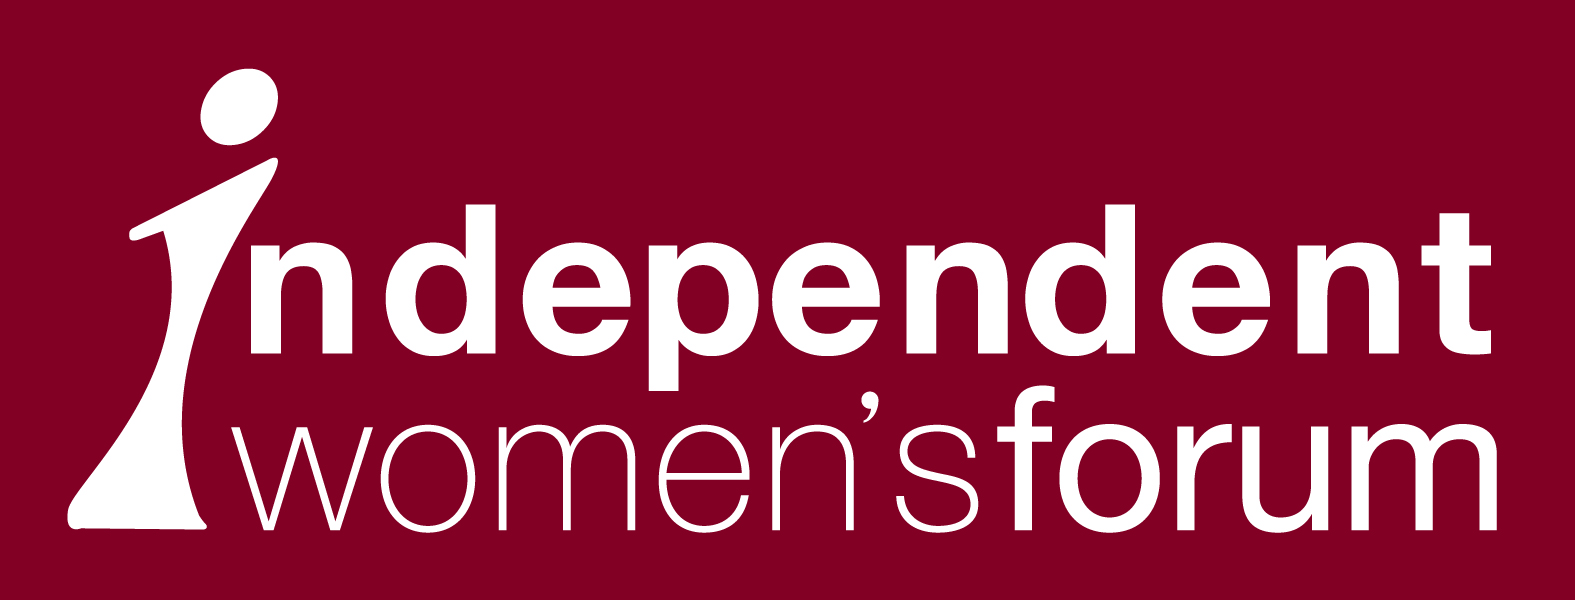 independent-womens-forum.jpg